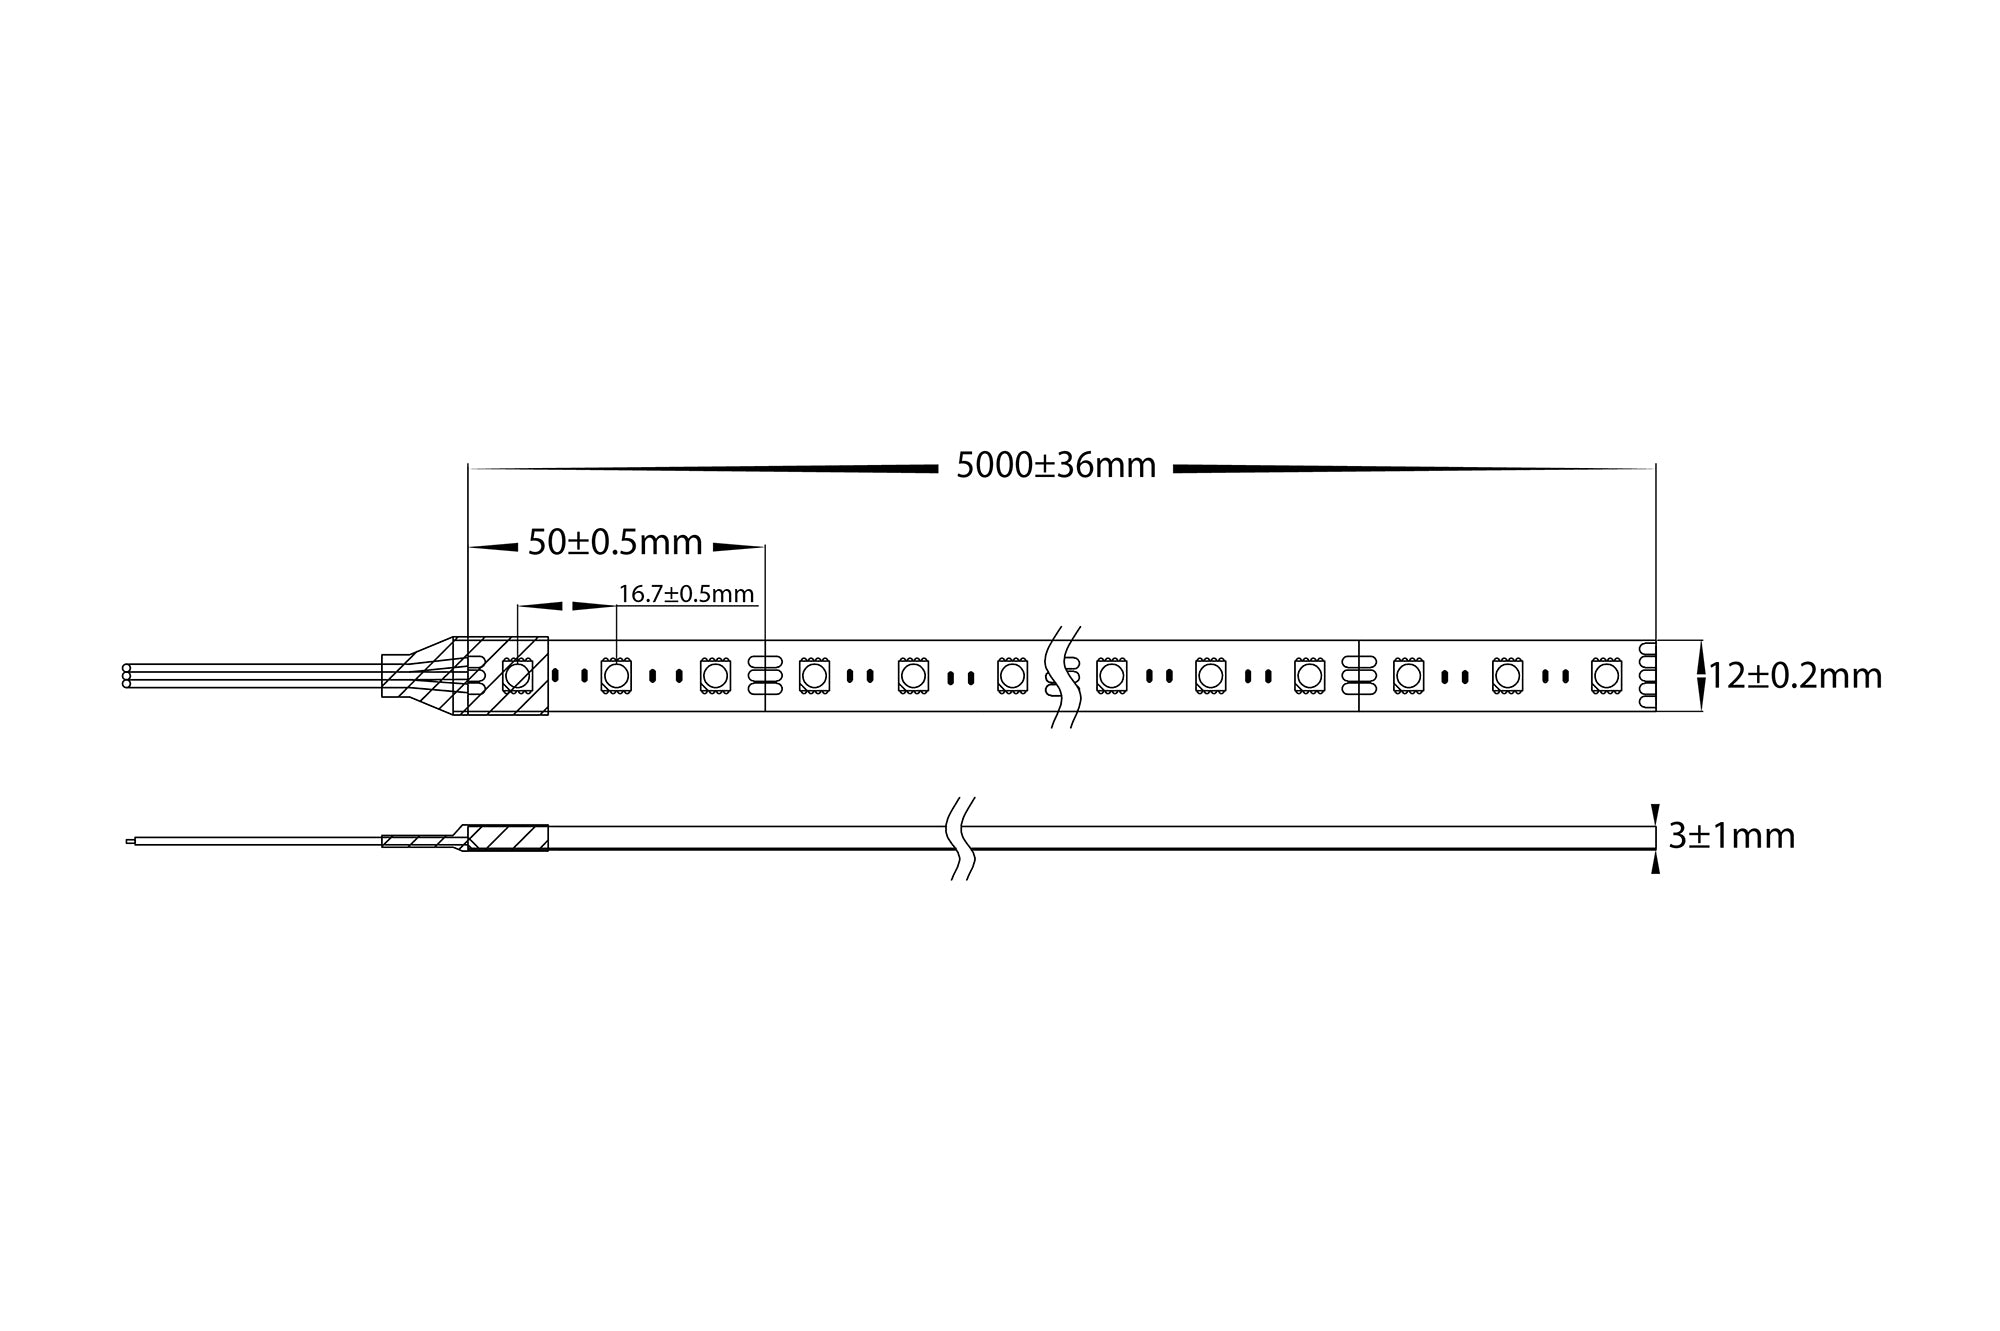 HV9750-IP54-60-CHRGB - 8w IP54 Chasing Mulicolour LED Strip